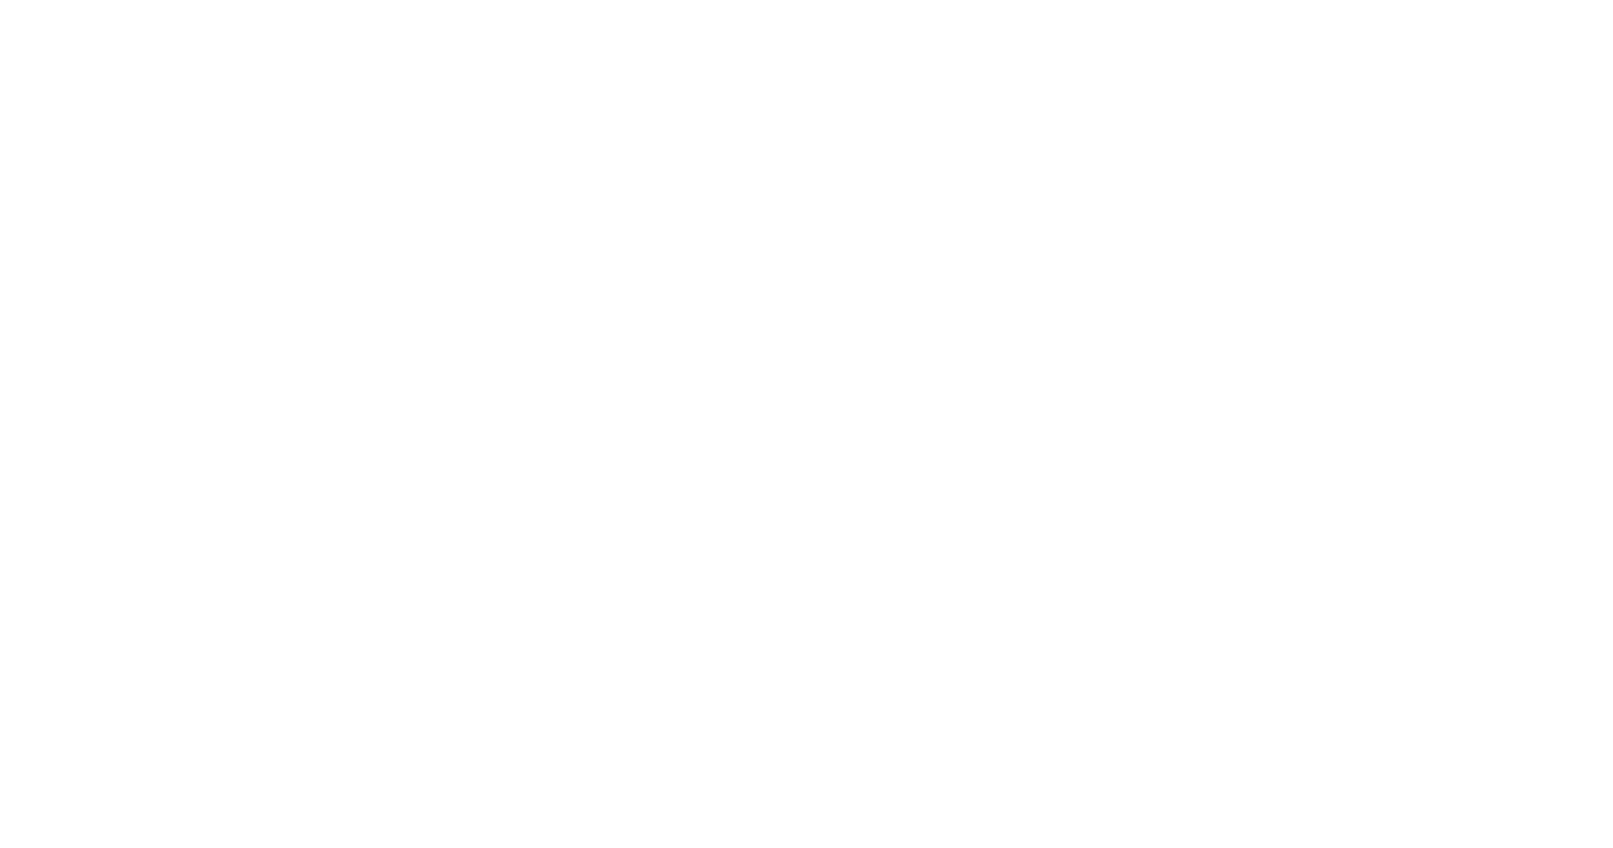 The Artist Market Co.